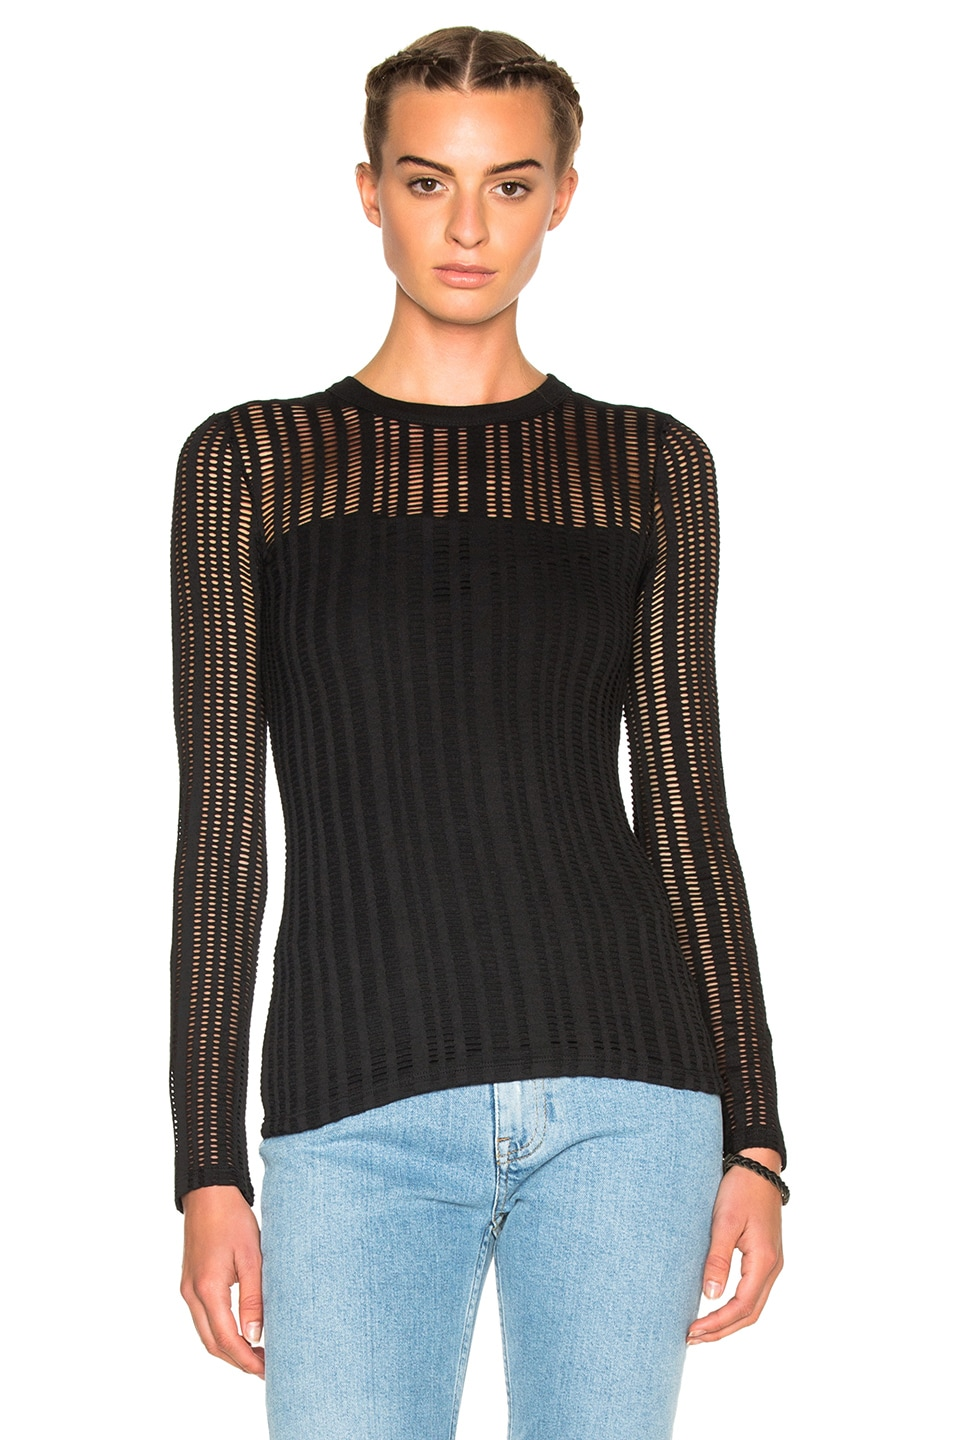 0e07a453a75 Image 1 of T by Alexander Wang Jacquard Long Sleeve Top in Black